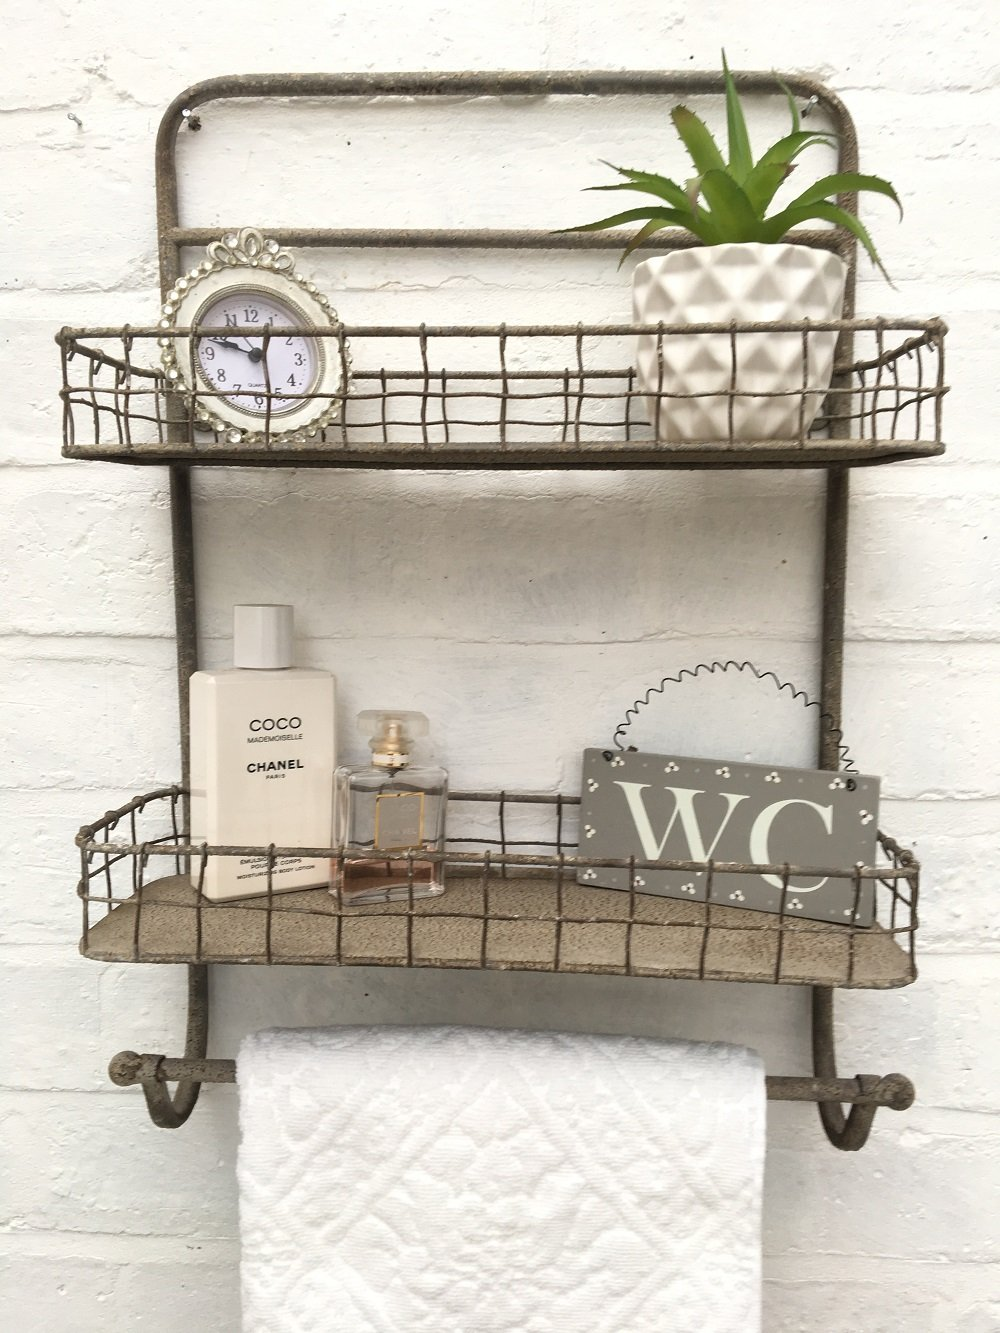 Vintage Style Metal Wall Shelf Unit Rack Towel Rail Kitchen Bathroom Industrial Storage Home Storage